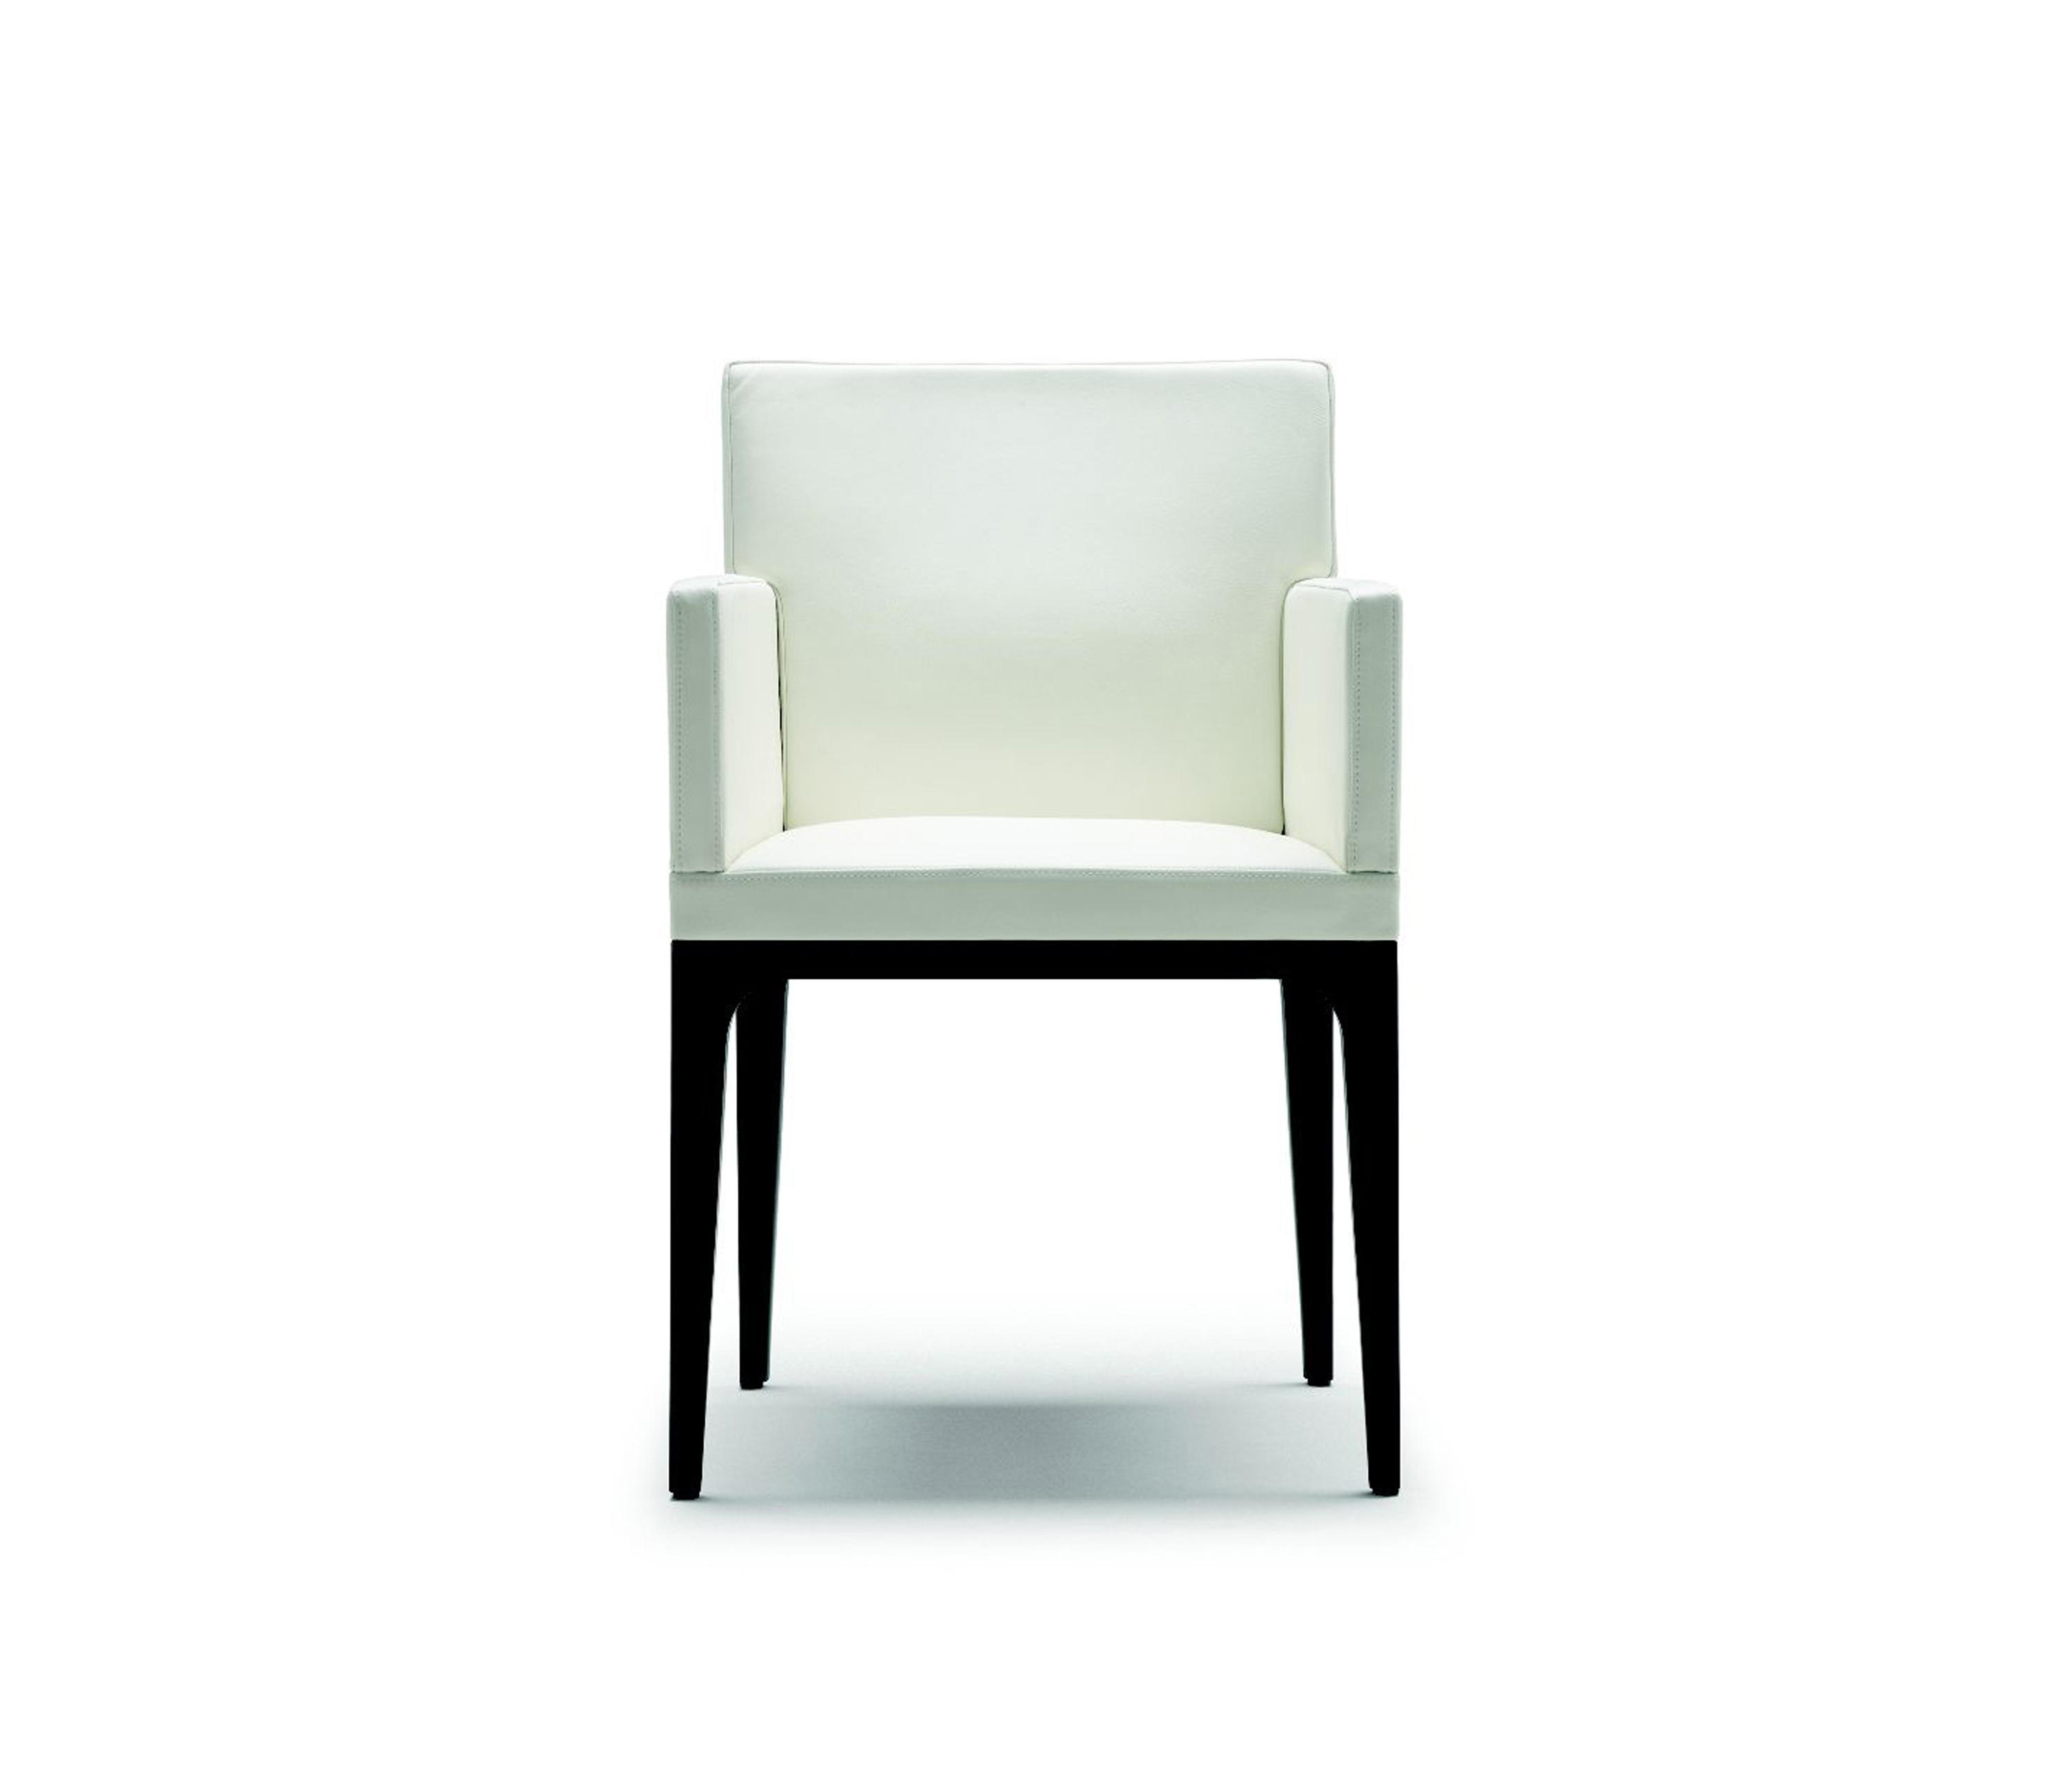 Cube Chairs Cube Chairs From Interna Architonic